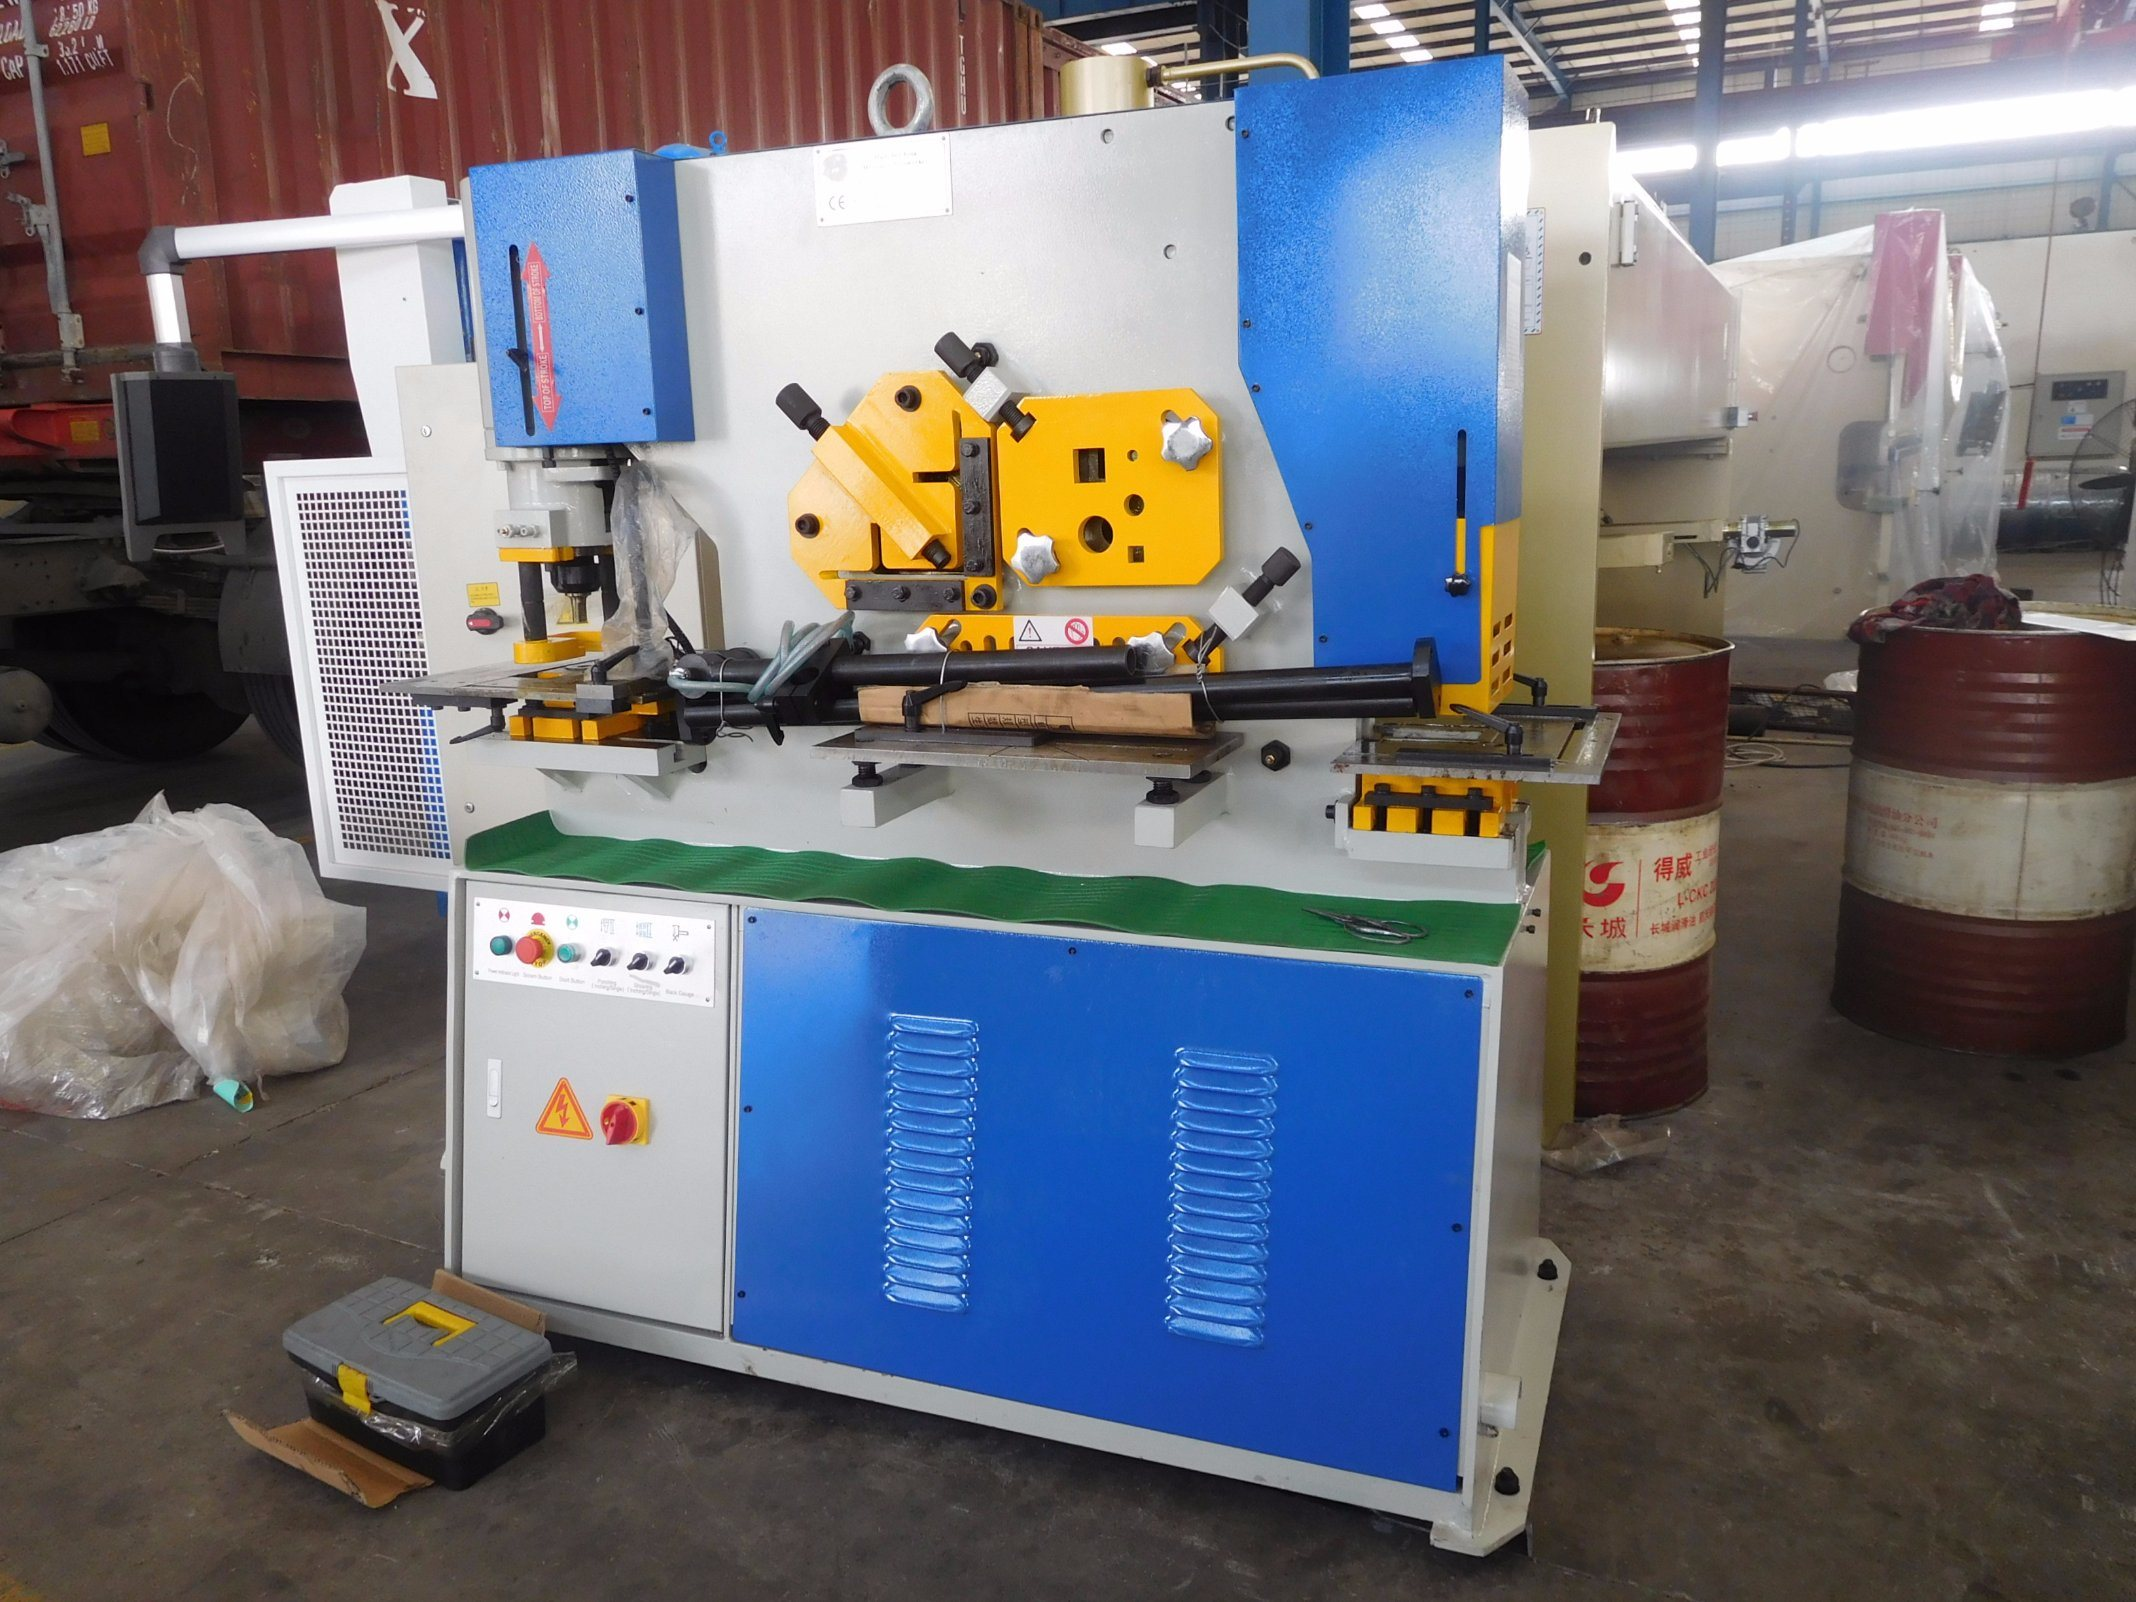 Durama Qualified Hydraulic Ironworker /Cutting Machine/ Ironwork Machine/Universal Punching & Shearing Machine / Cutting Machine / Punching Machine pictures & photos